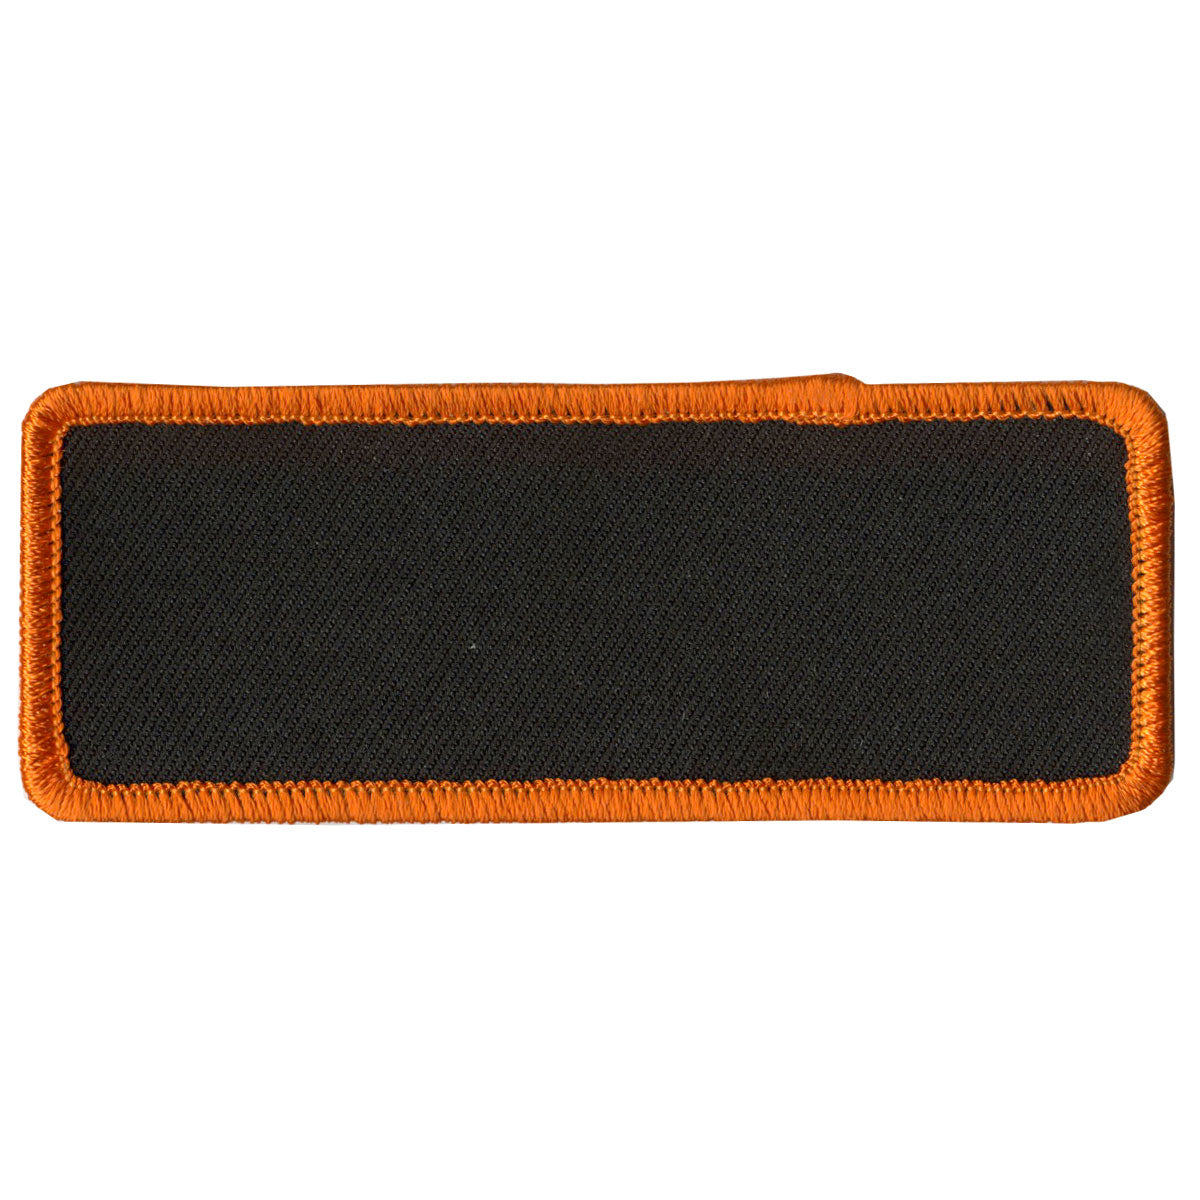 "Hot Leathers Blank w/ Orange Trim 4"" x 1.5"" Patch"